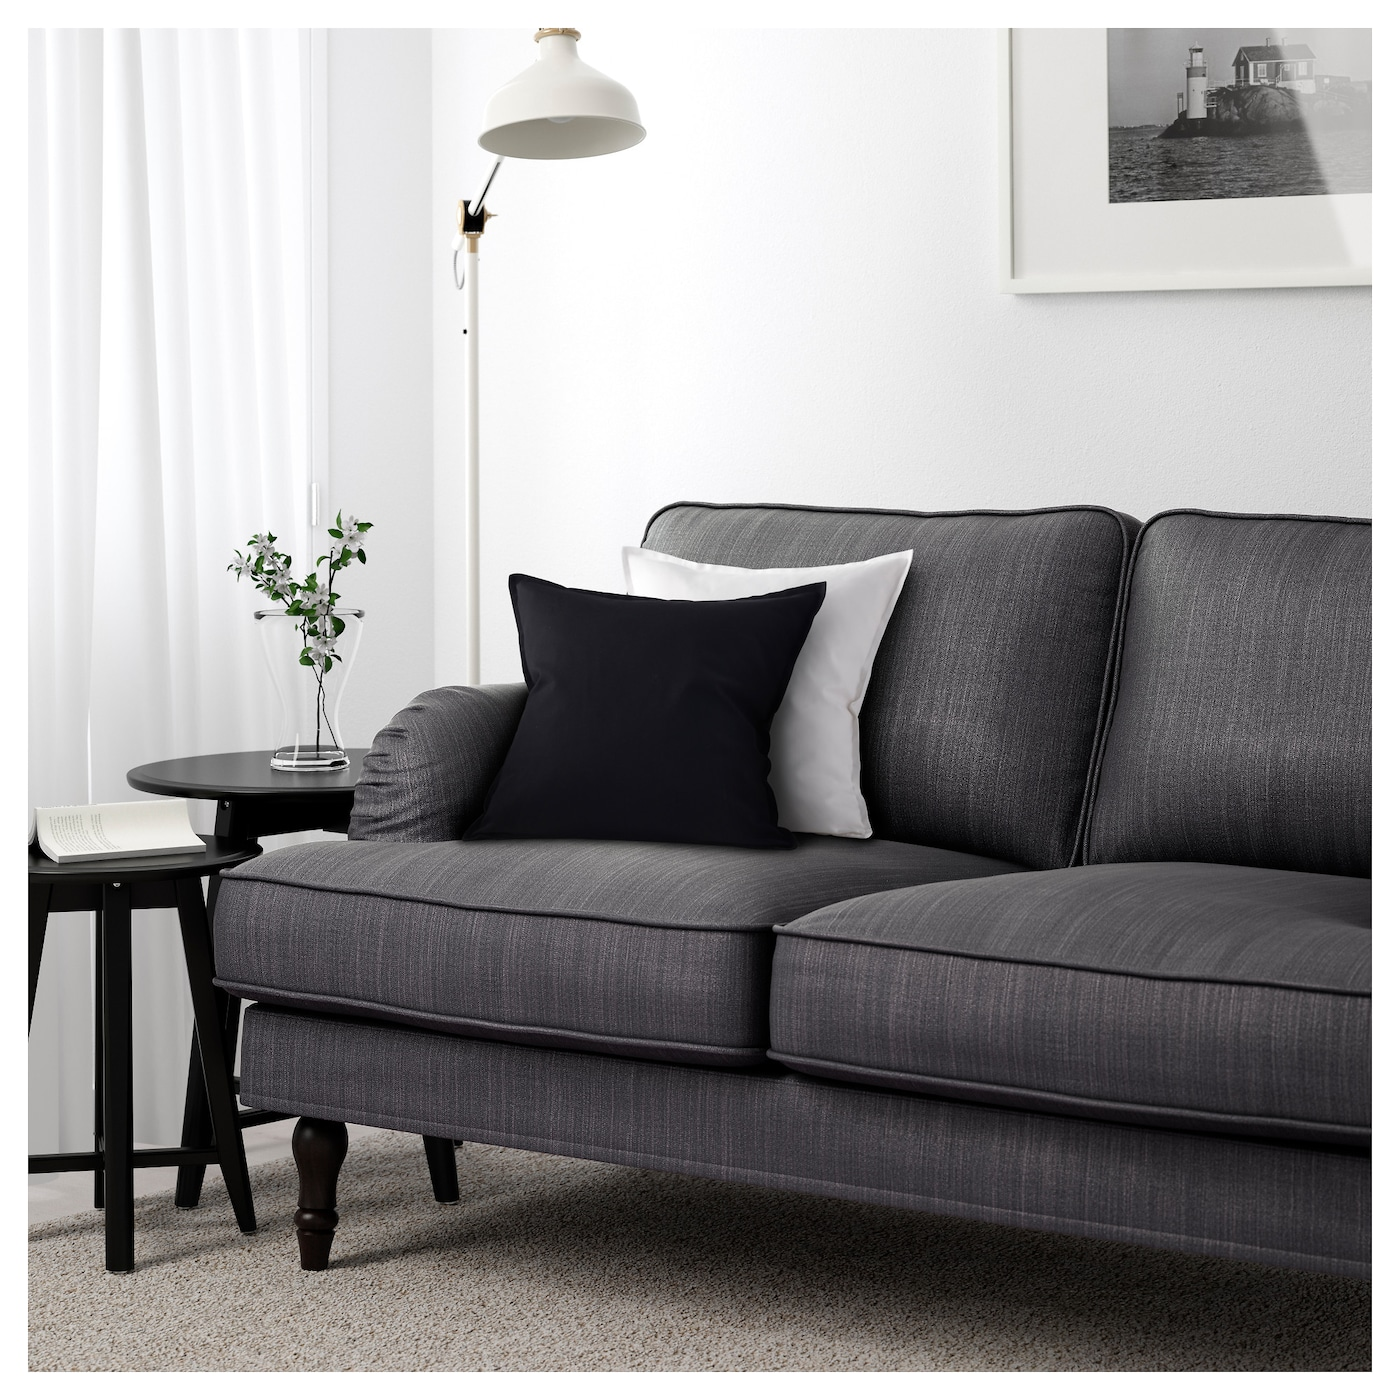 stocksund three seat sofa nolhaga dark grey black wood ikea. Black Bedroom Furniture Sets. Home Design Ideas